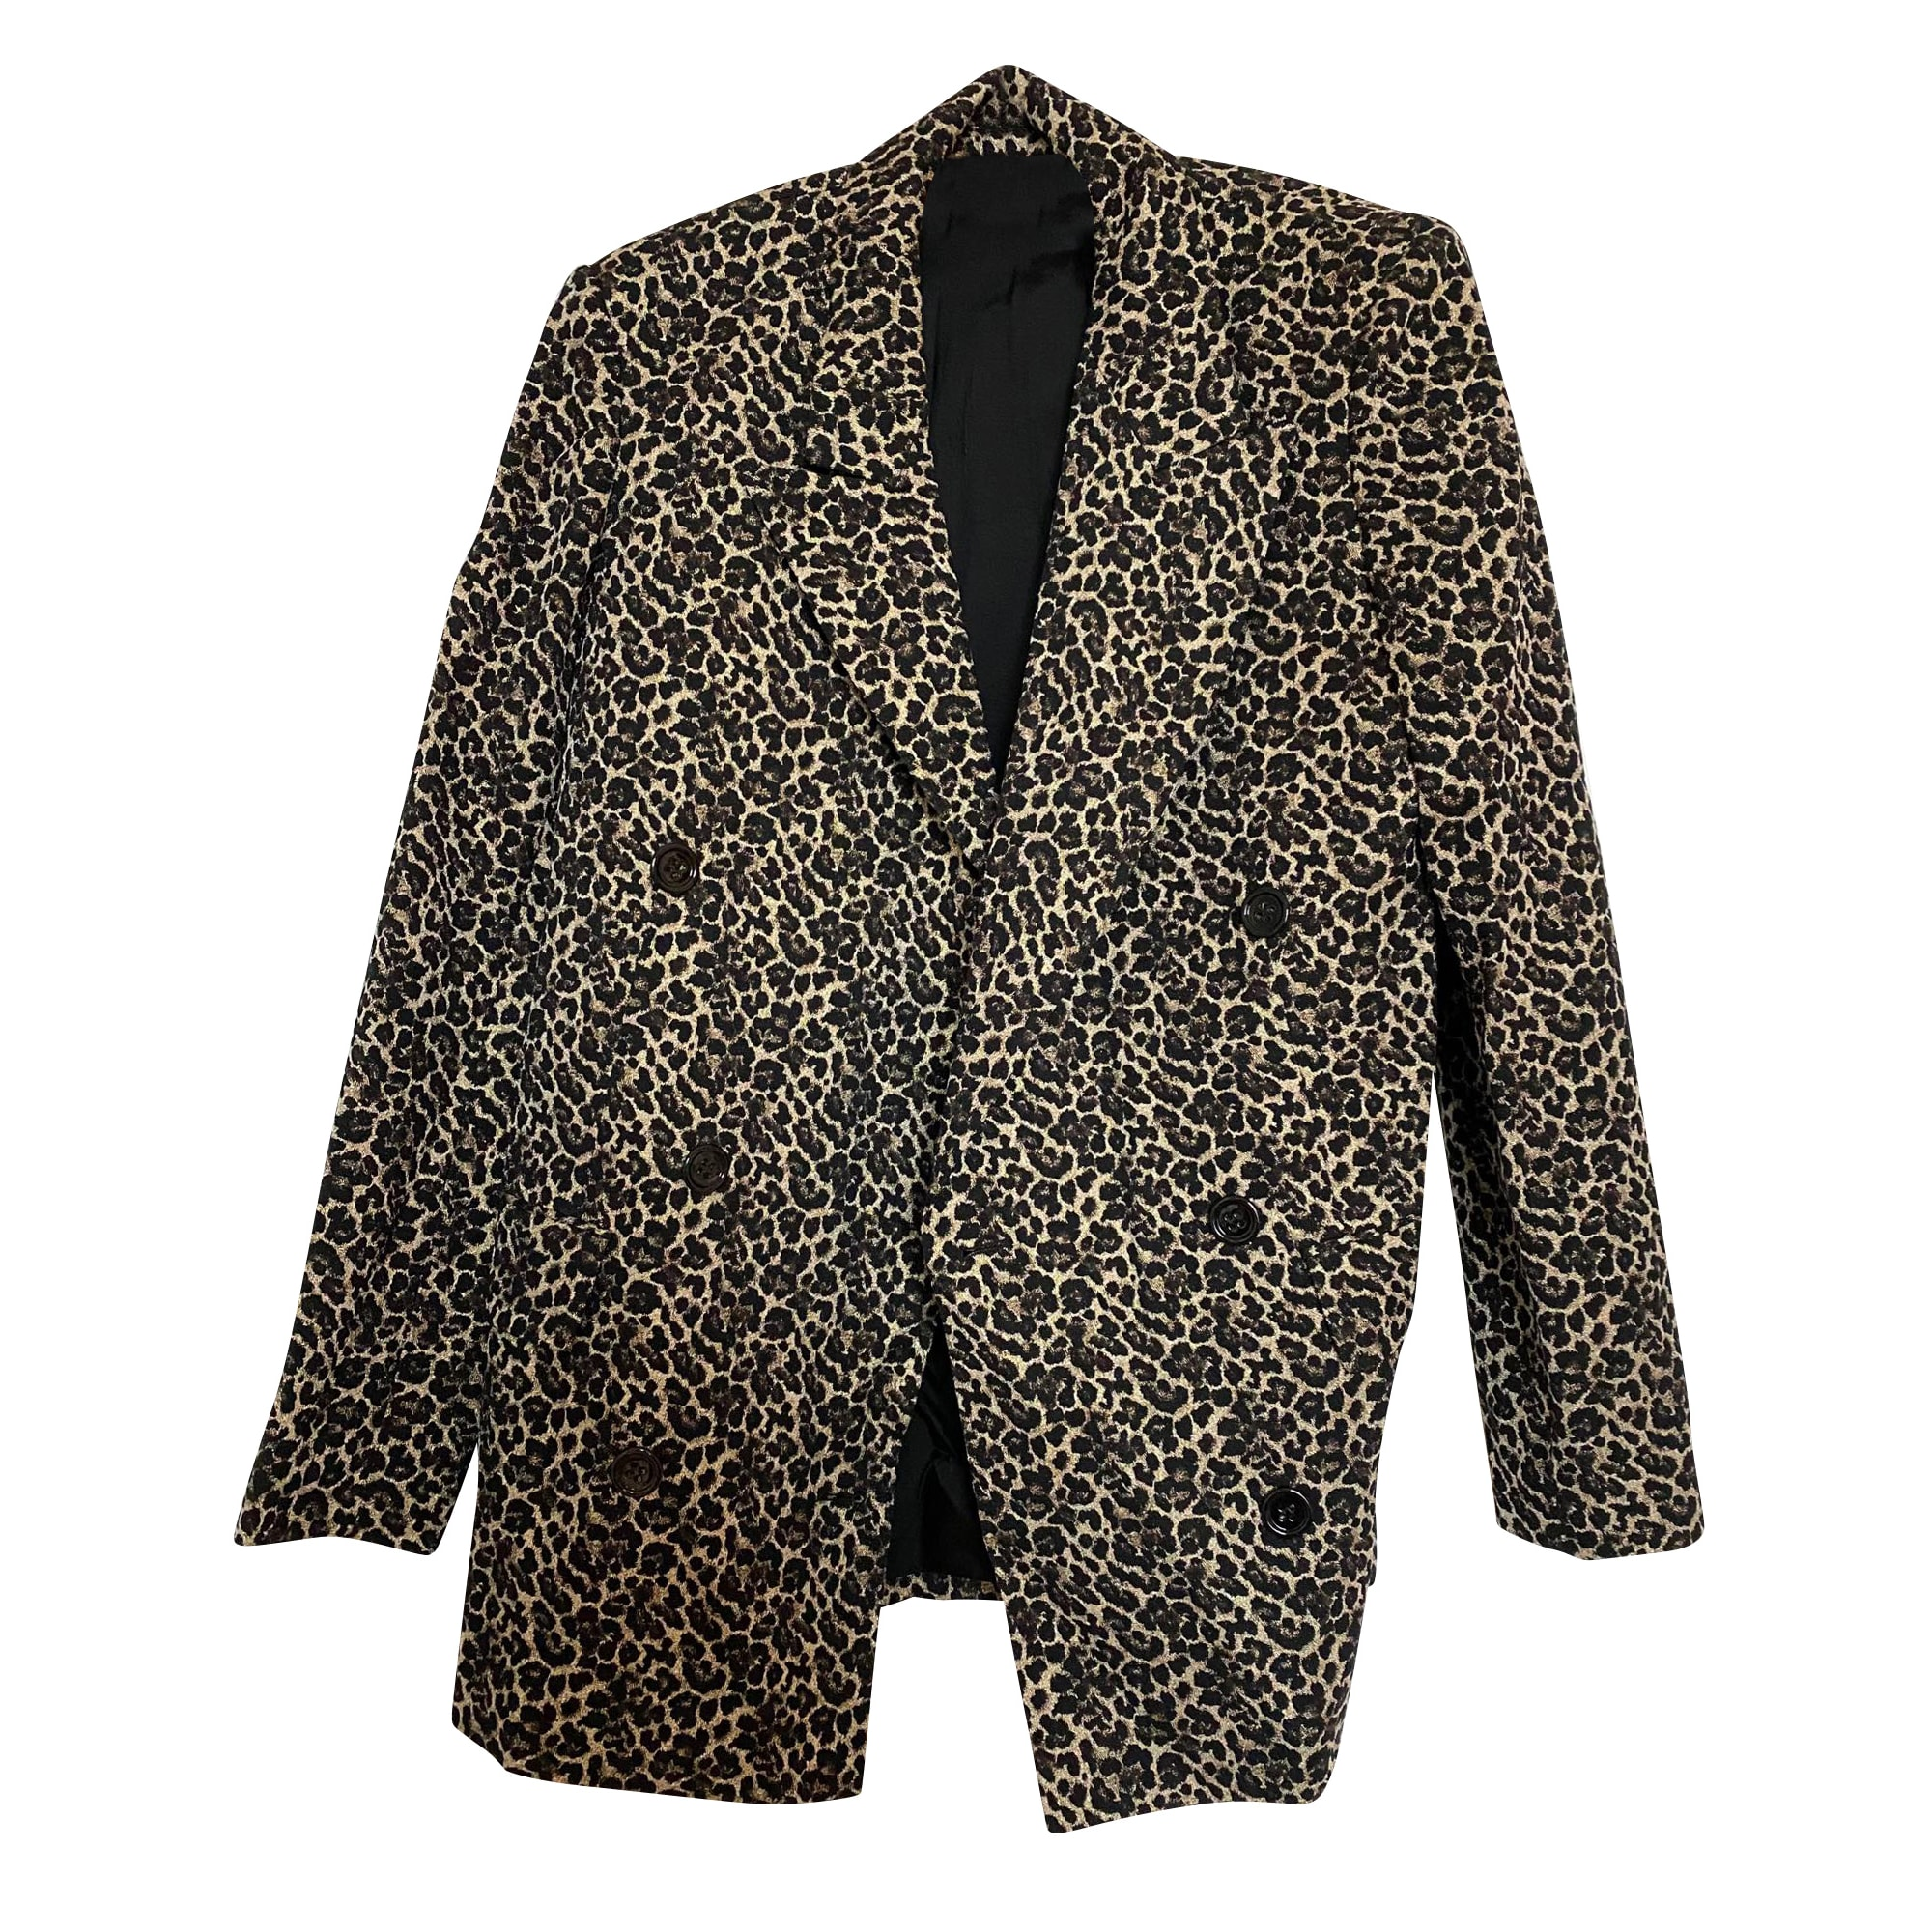 Veste THE KOOPLES Imprimés animaliers